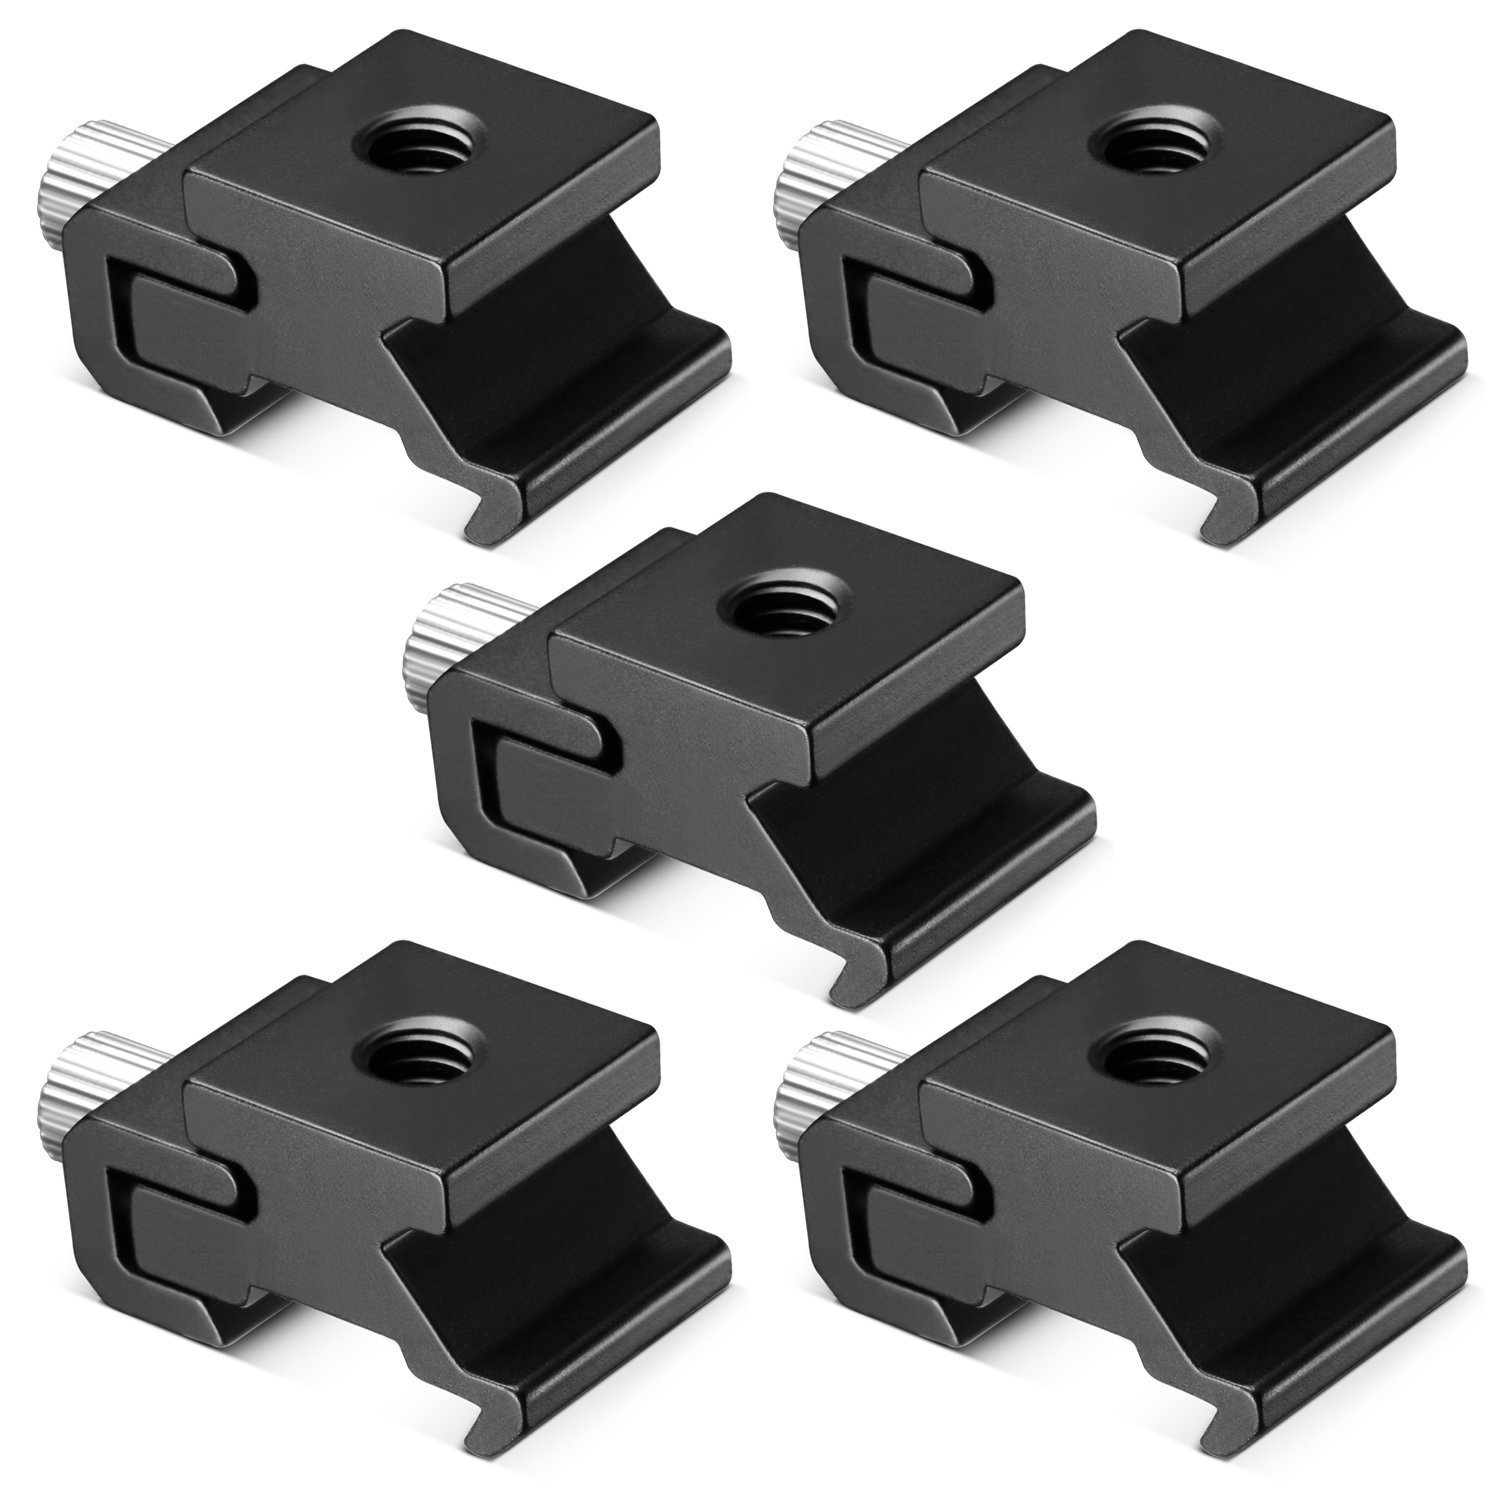 Neewer Black Metal Cold Shoe Flash Stand Adapter with 1/4-inch -20 Tripod Screw (5 Packs)